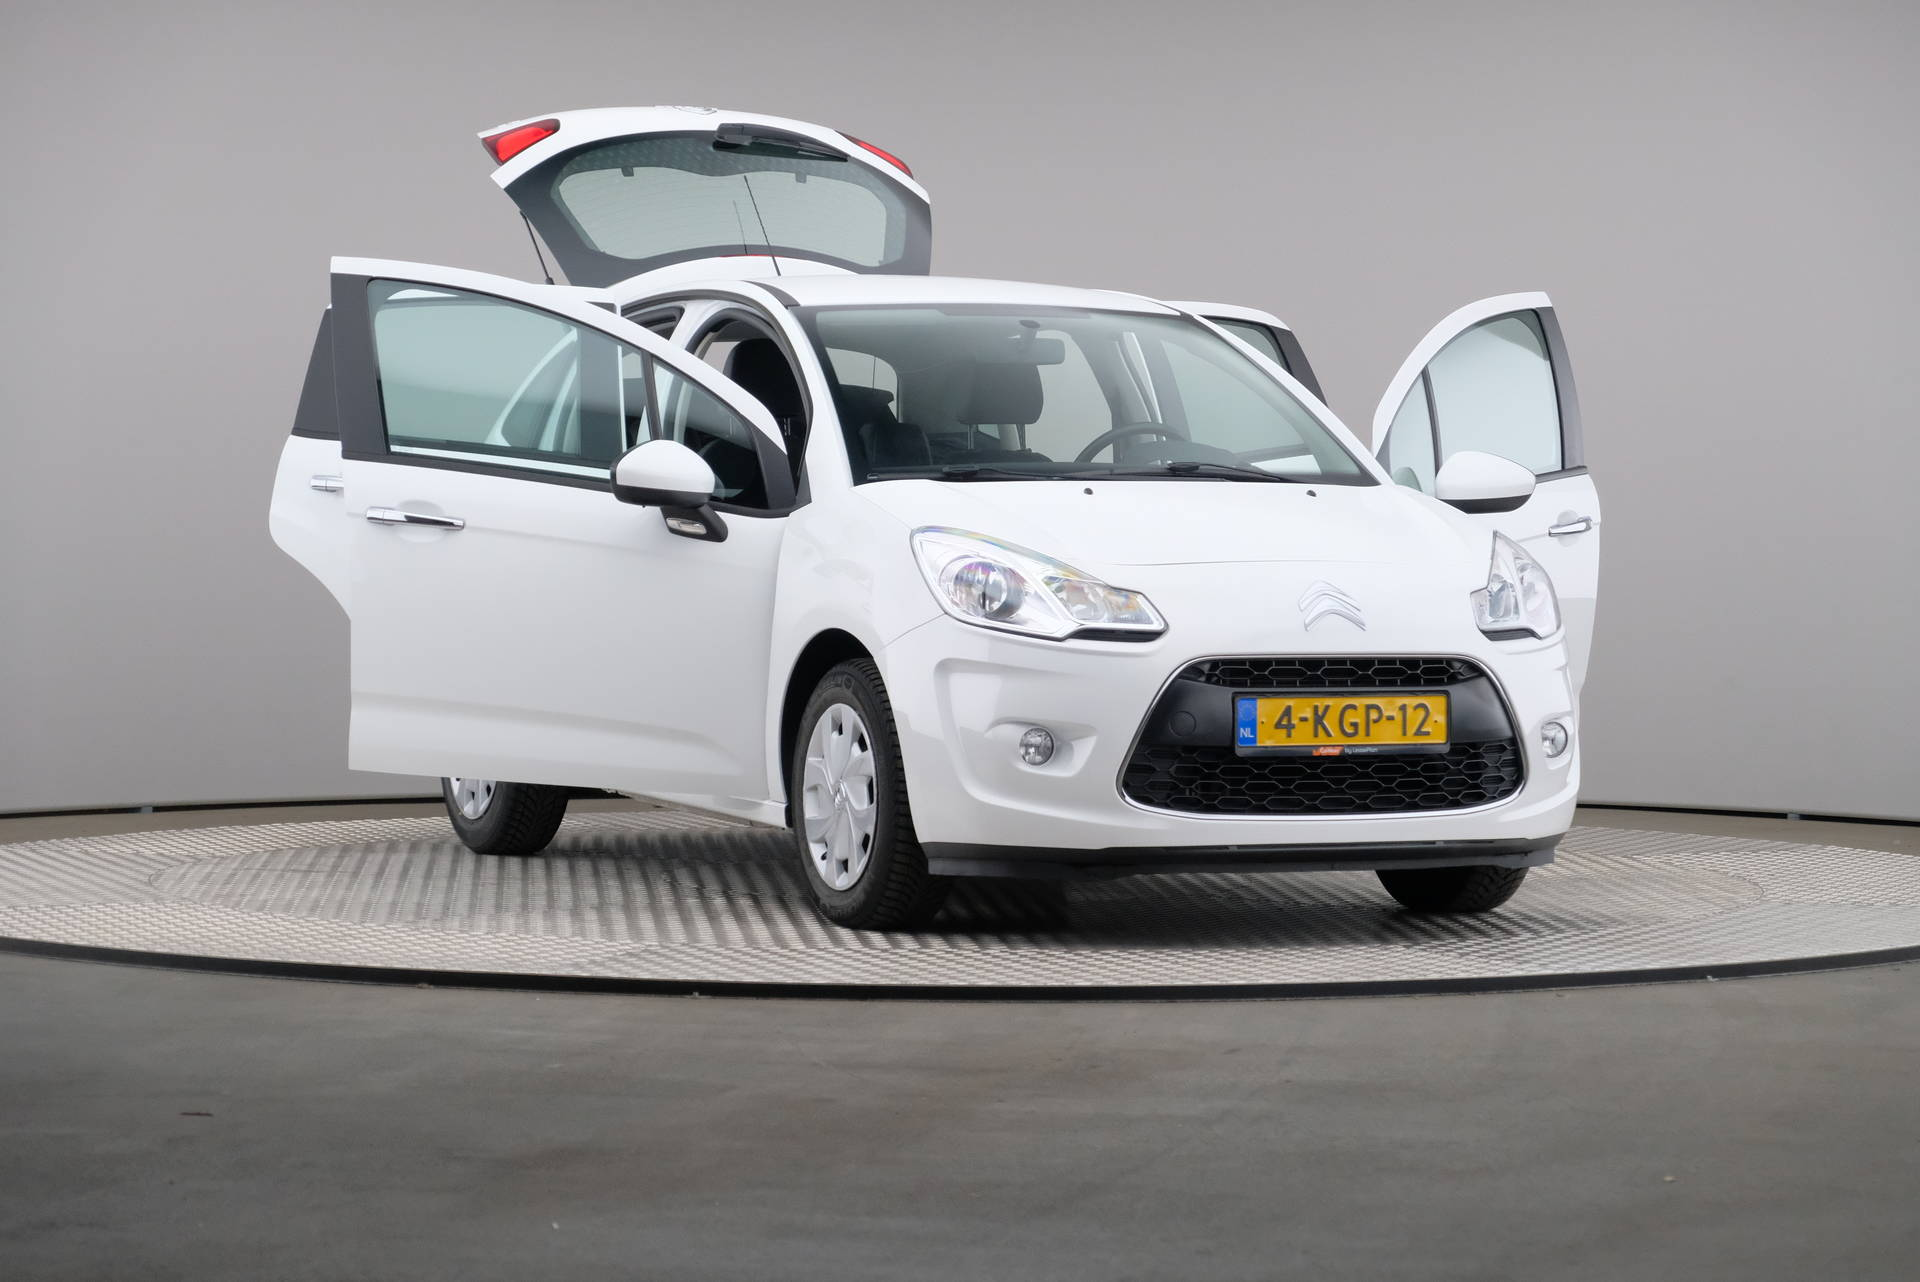 Citroën C3 1.4 e-HDi Tendance, Automaat, Airconditioning, Cruise Control, 360-image66